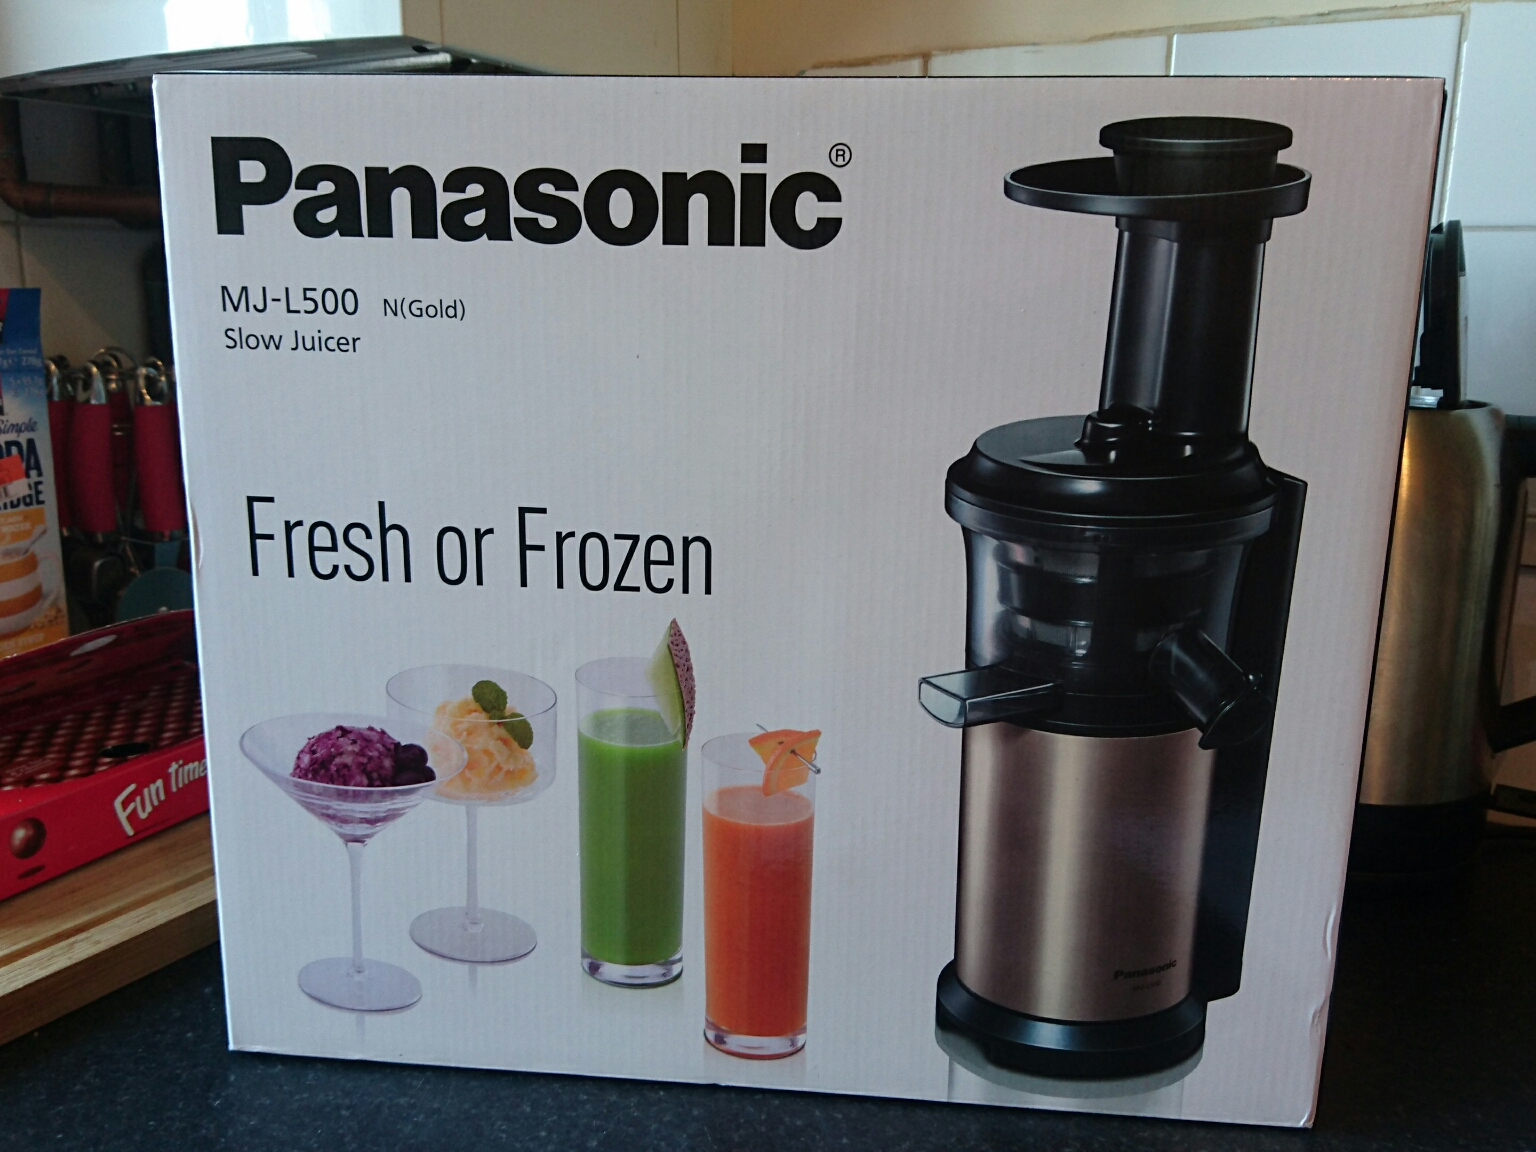 Panasonic Slow Juicer Sorbet Recipe : United Cakedom: Panasonic Slow Juicer: MJ-L500 Review